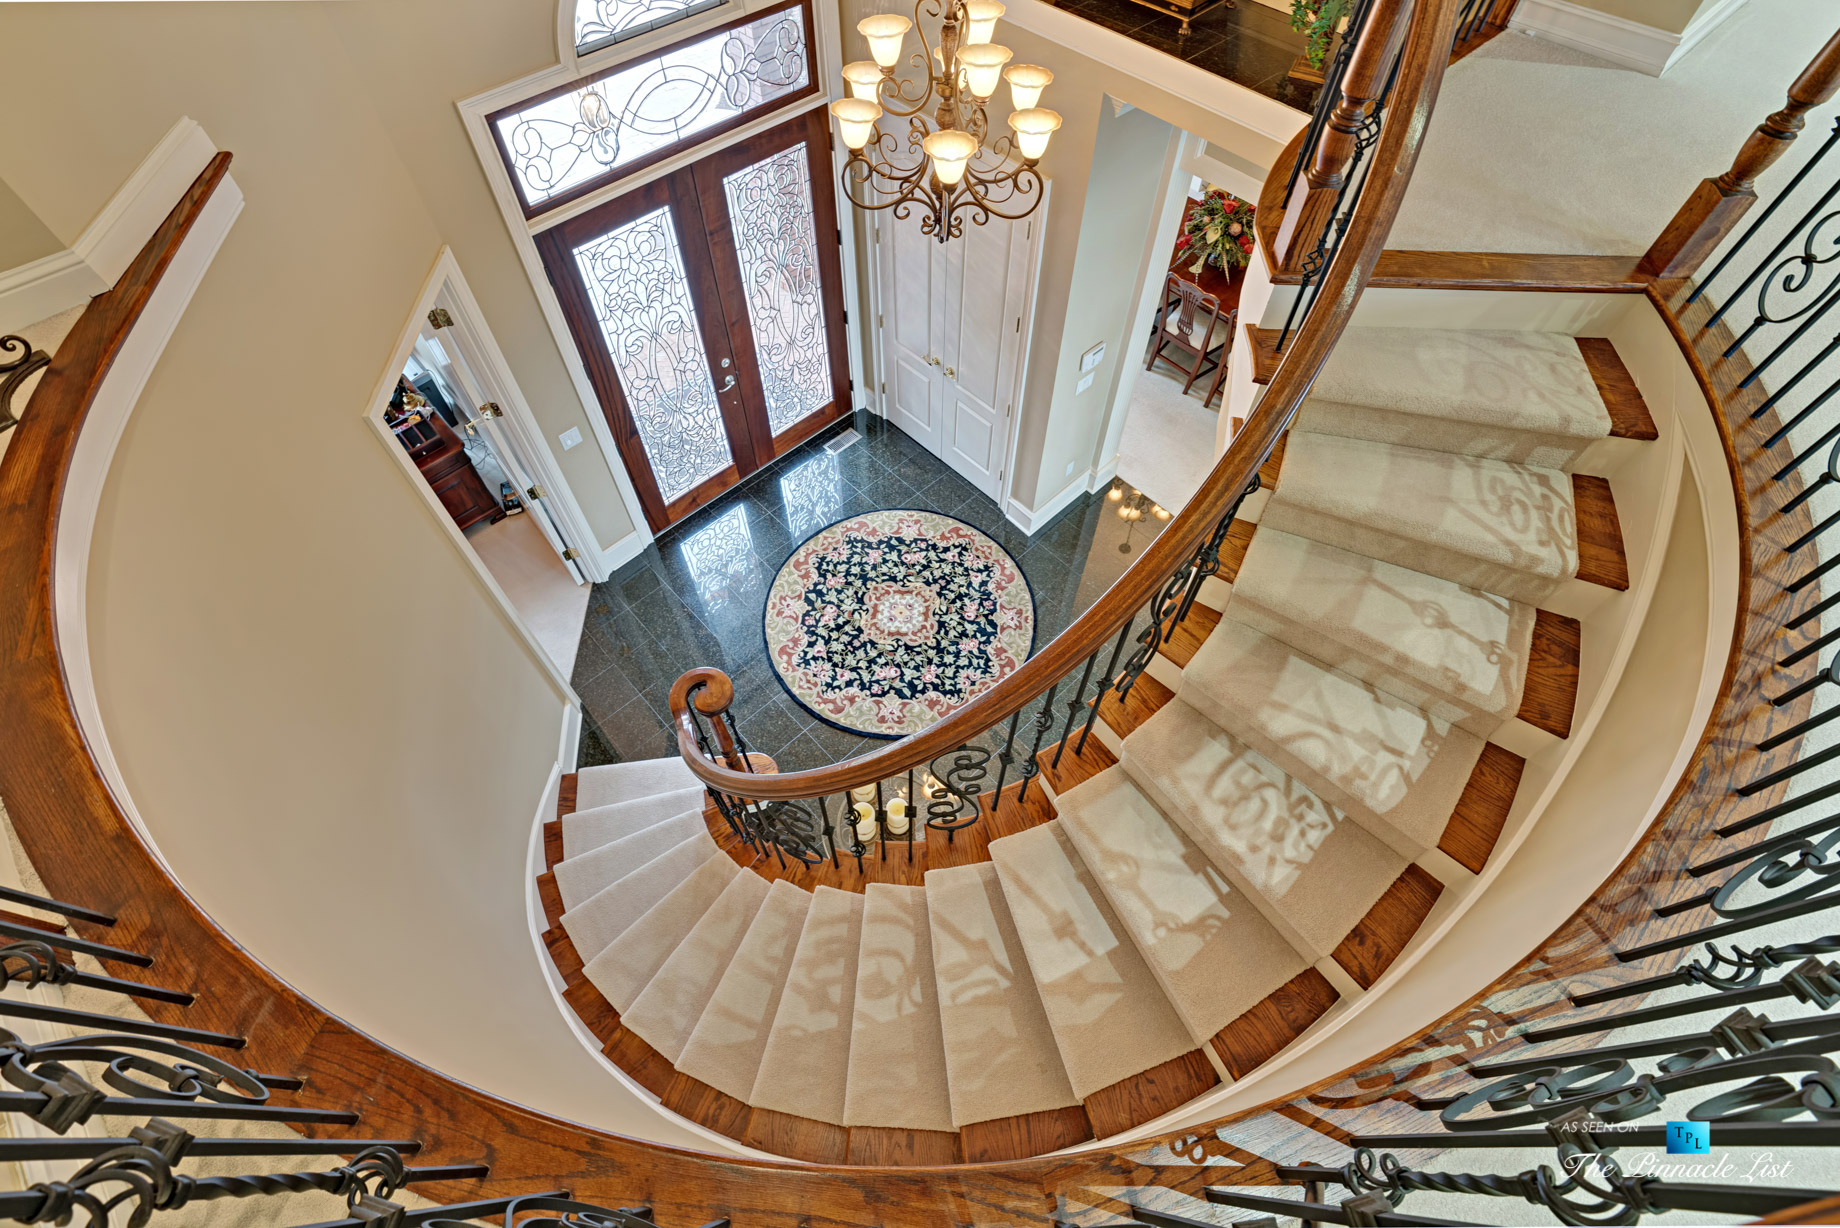 2219 Costley Mill Rd NE, Conyers, GA, USA - Circular Stairs - Luxury Real Estate - Equestrian Country Home